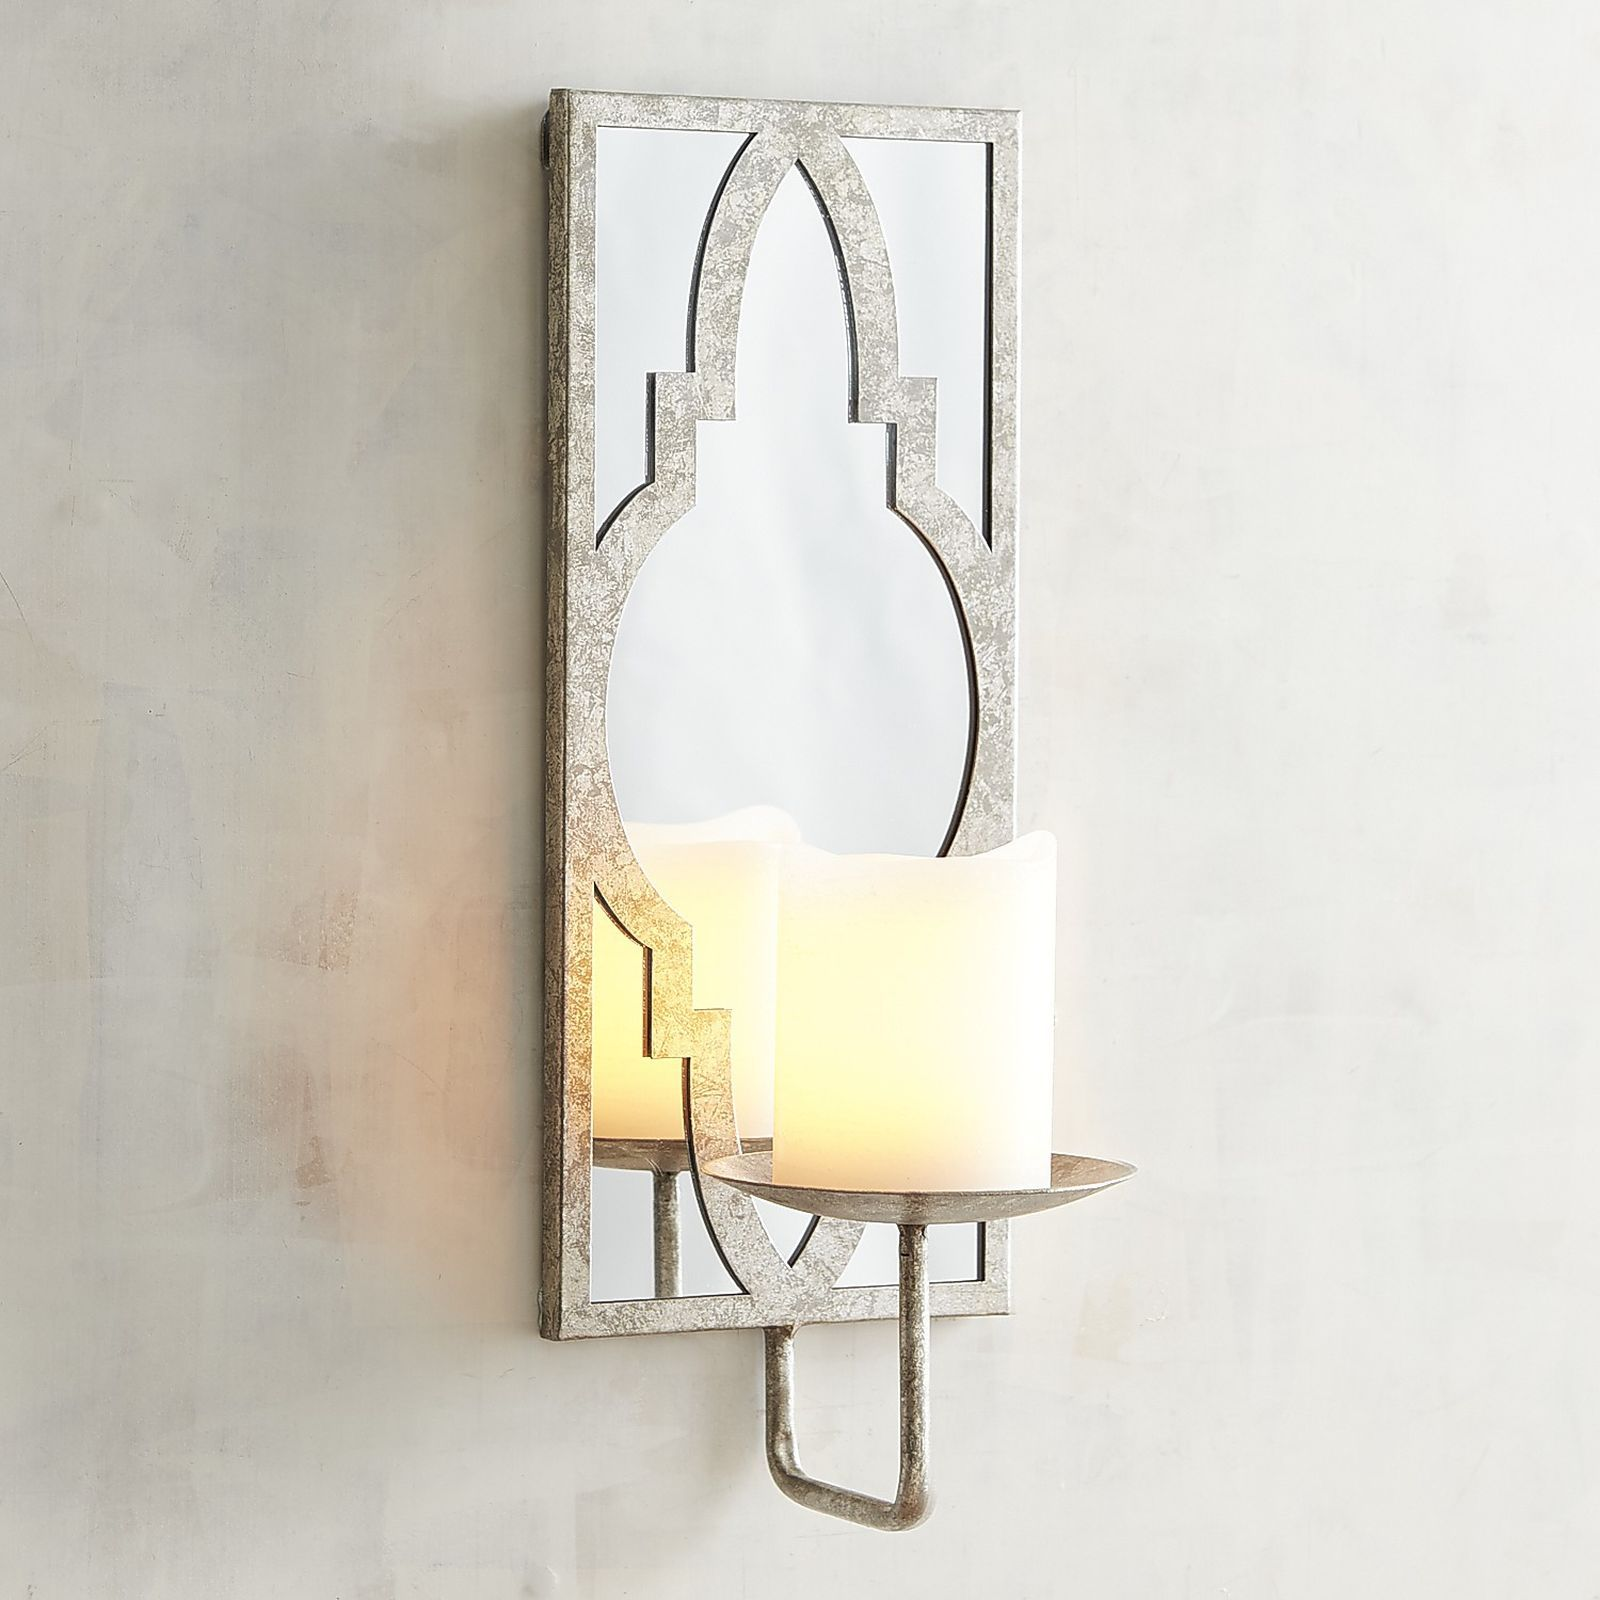 Silver mirrored candle holder wall sconce pier 1 imports